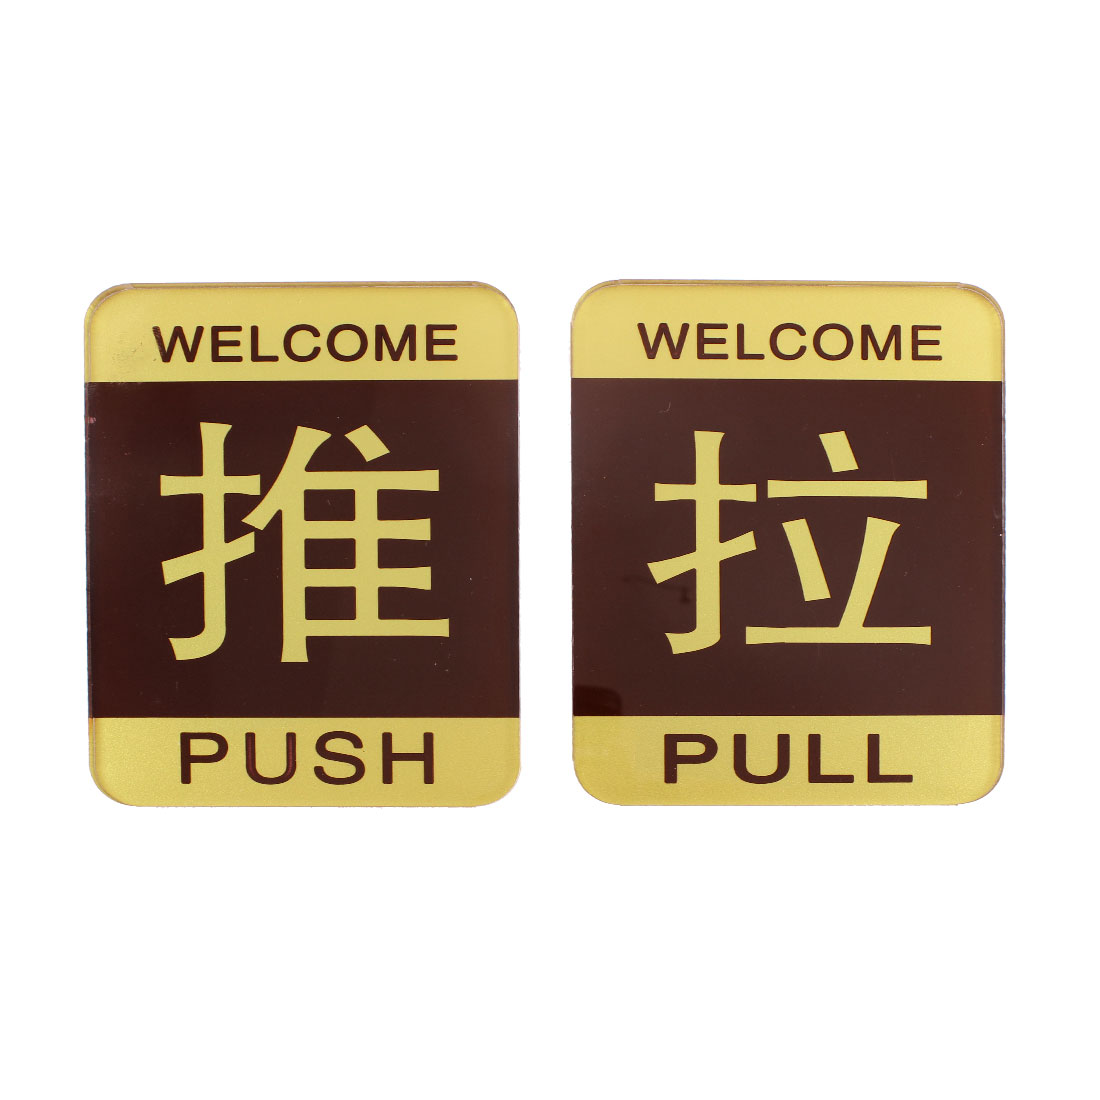 Square Shaped Door Pull Push Sign Board Gold Tone w Adhesive Tape Pair